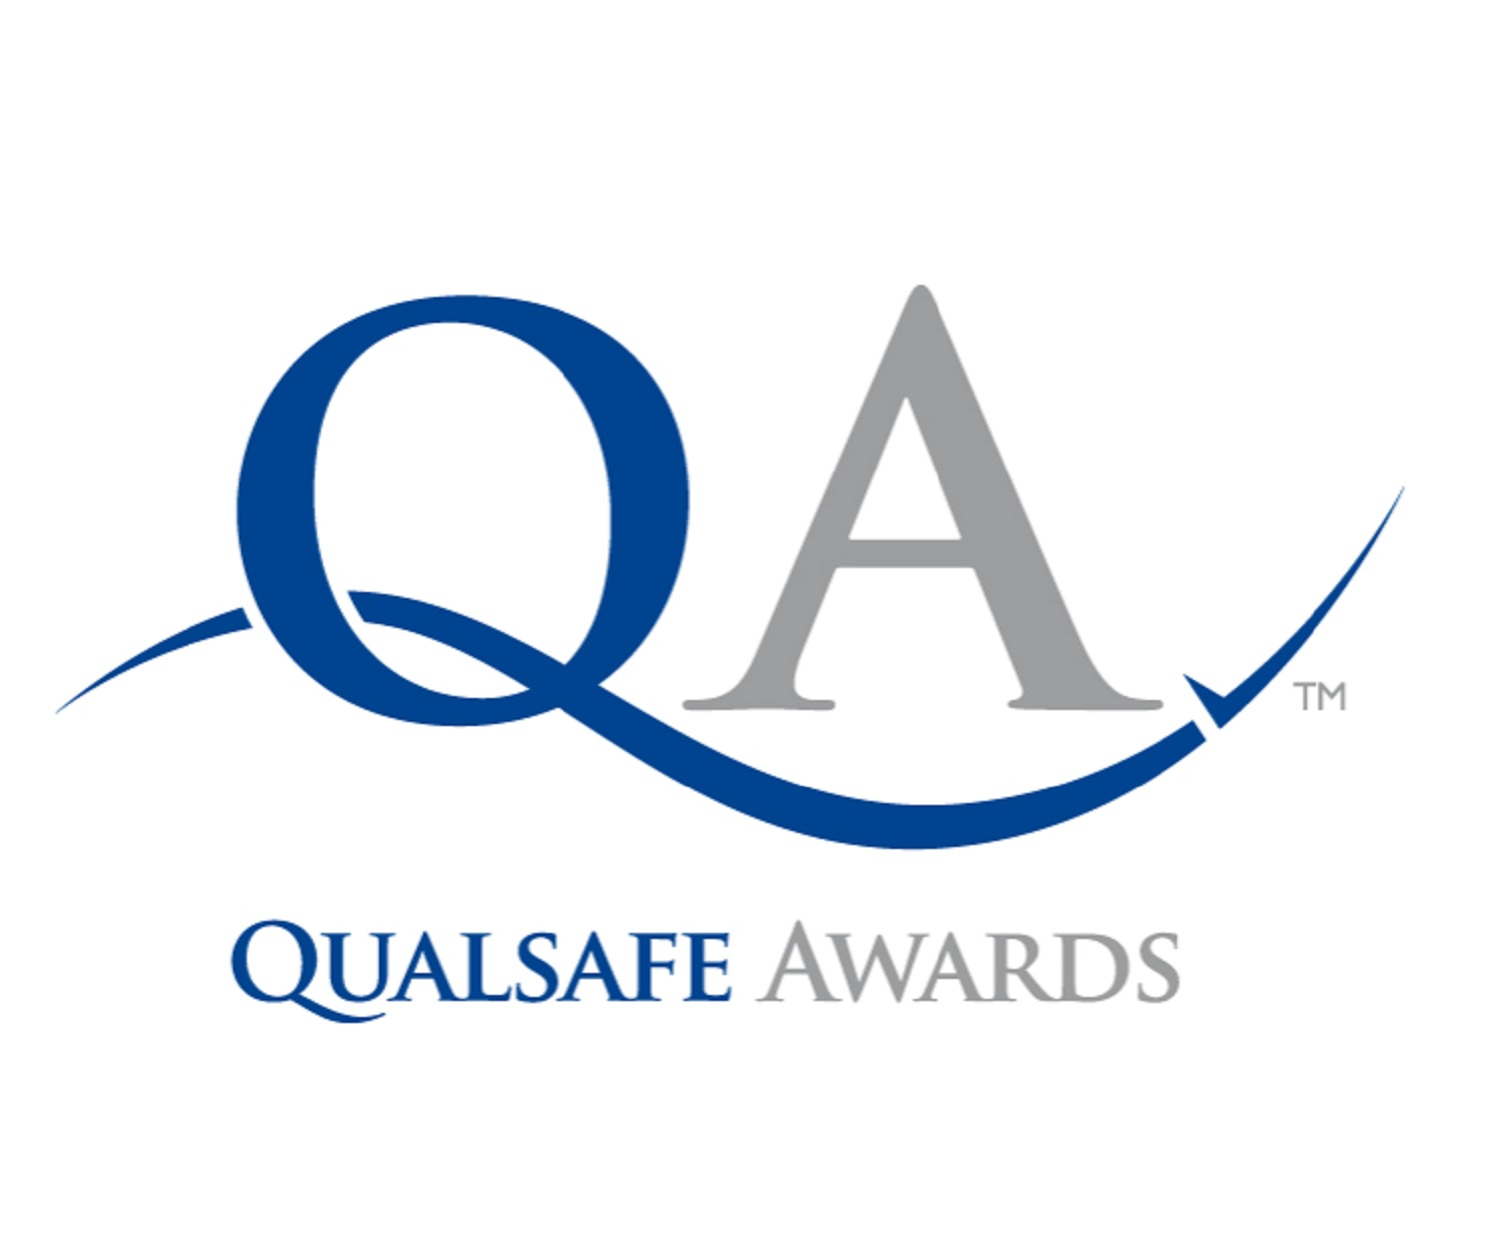 qualsafe LOGO.png